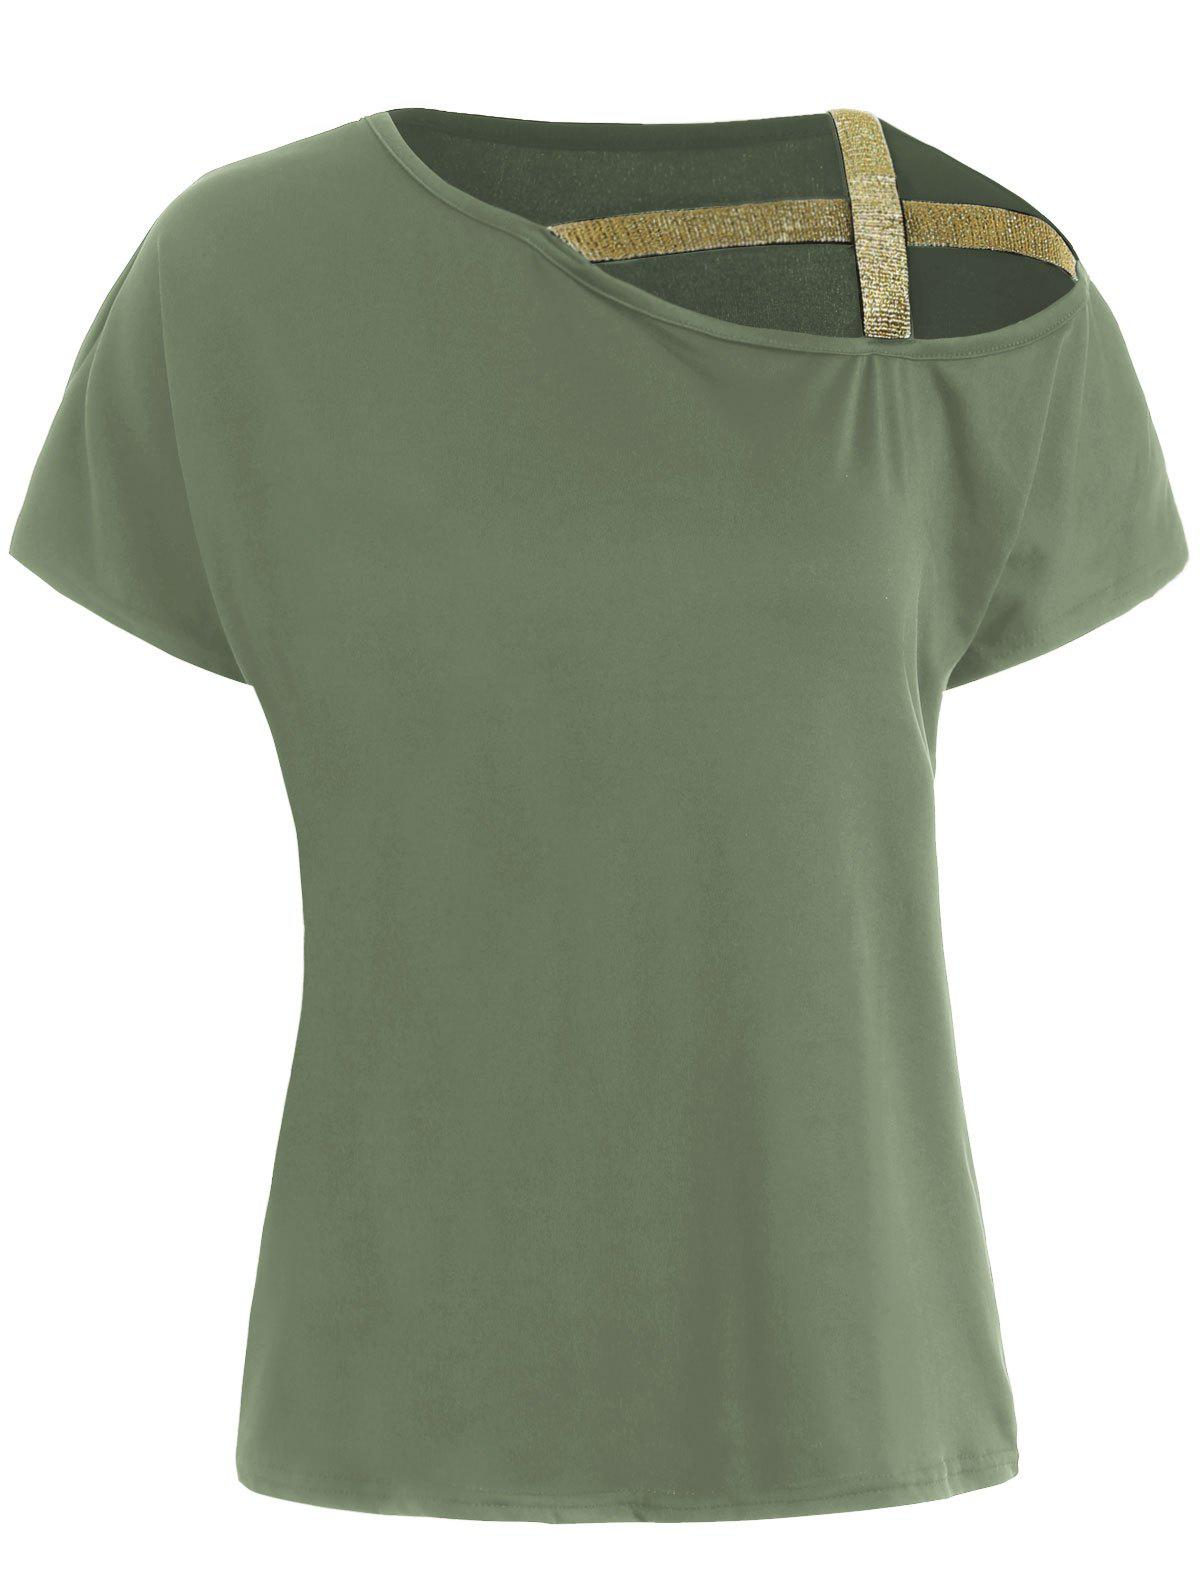 Shiny Straps Batwing Sleeve T-shirt - ARMY GREEN S